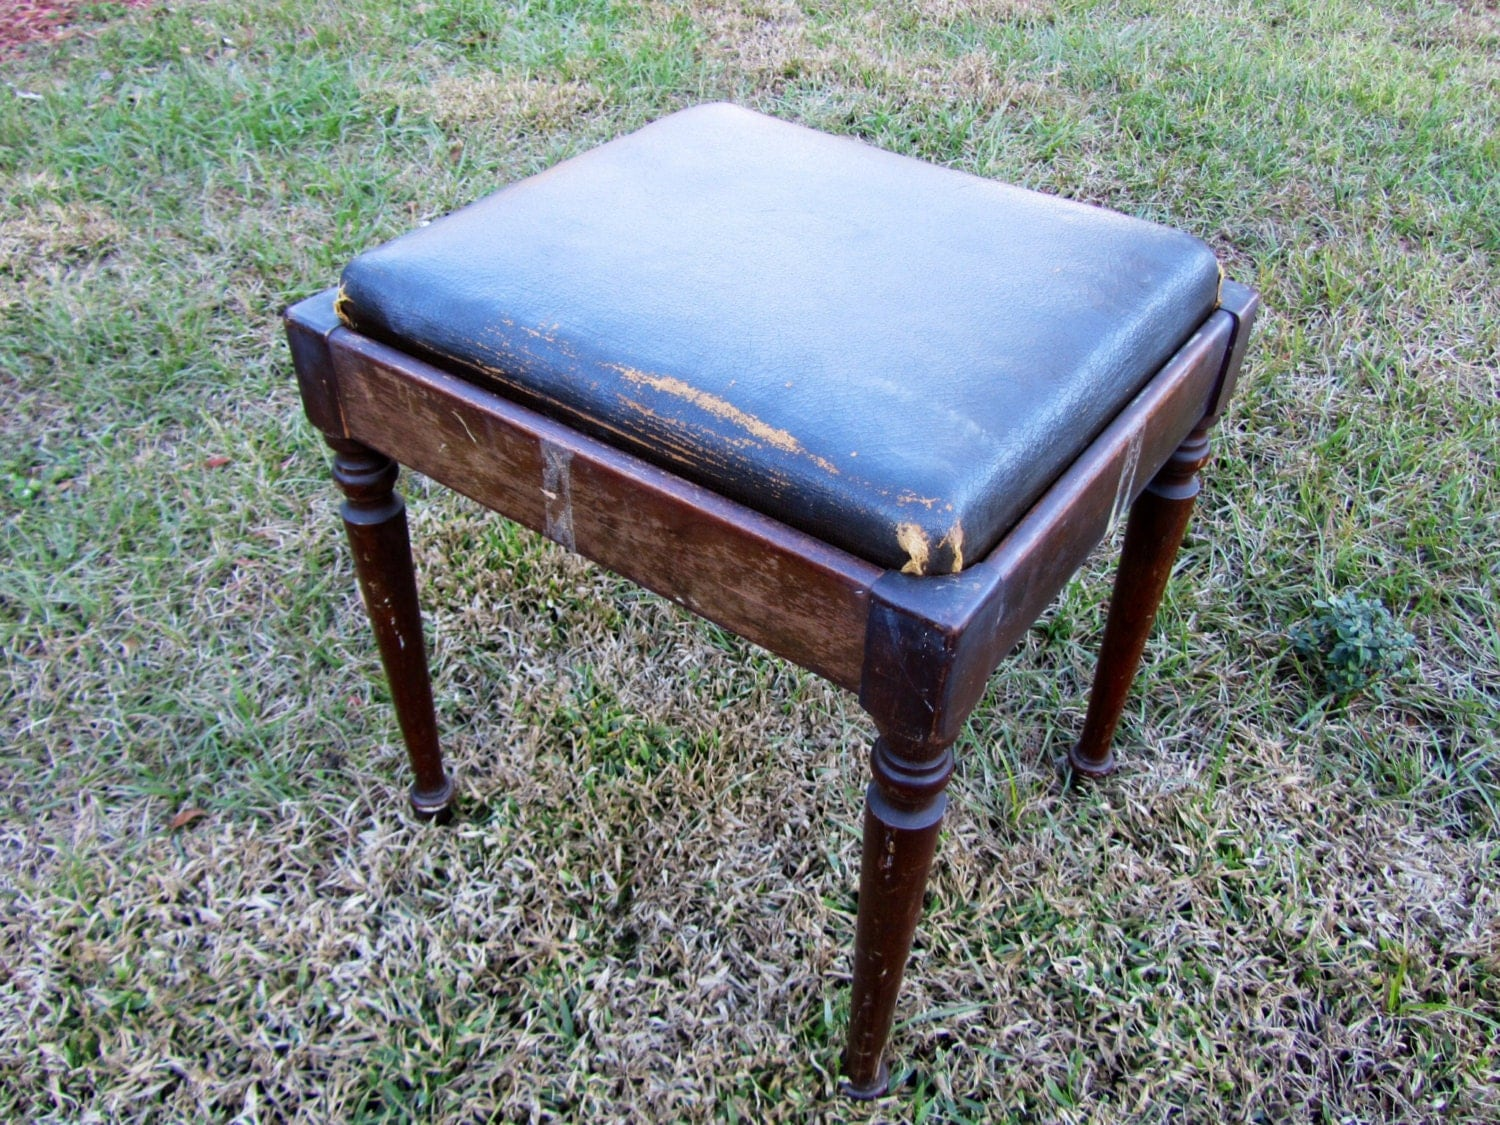 Leather Seat Piano Bench Vintage Piano Bench Wood Piano